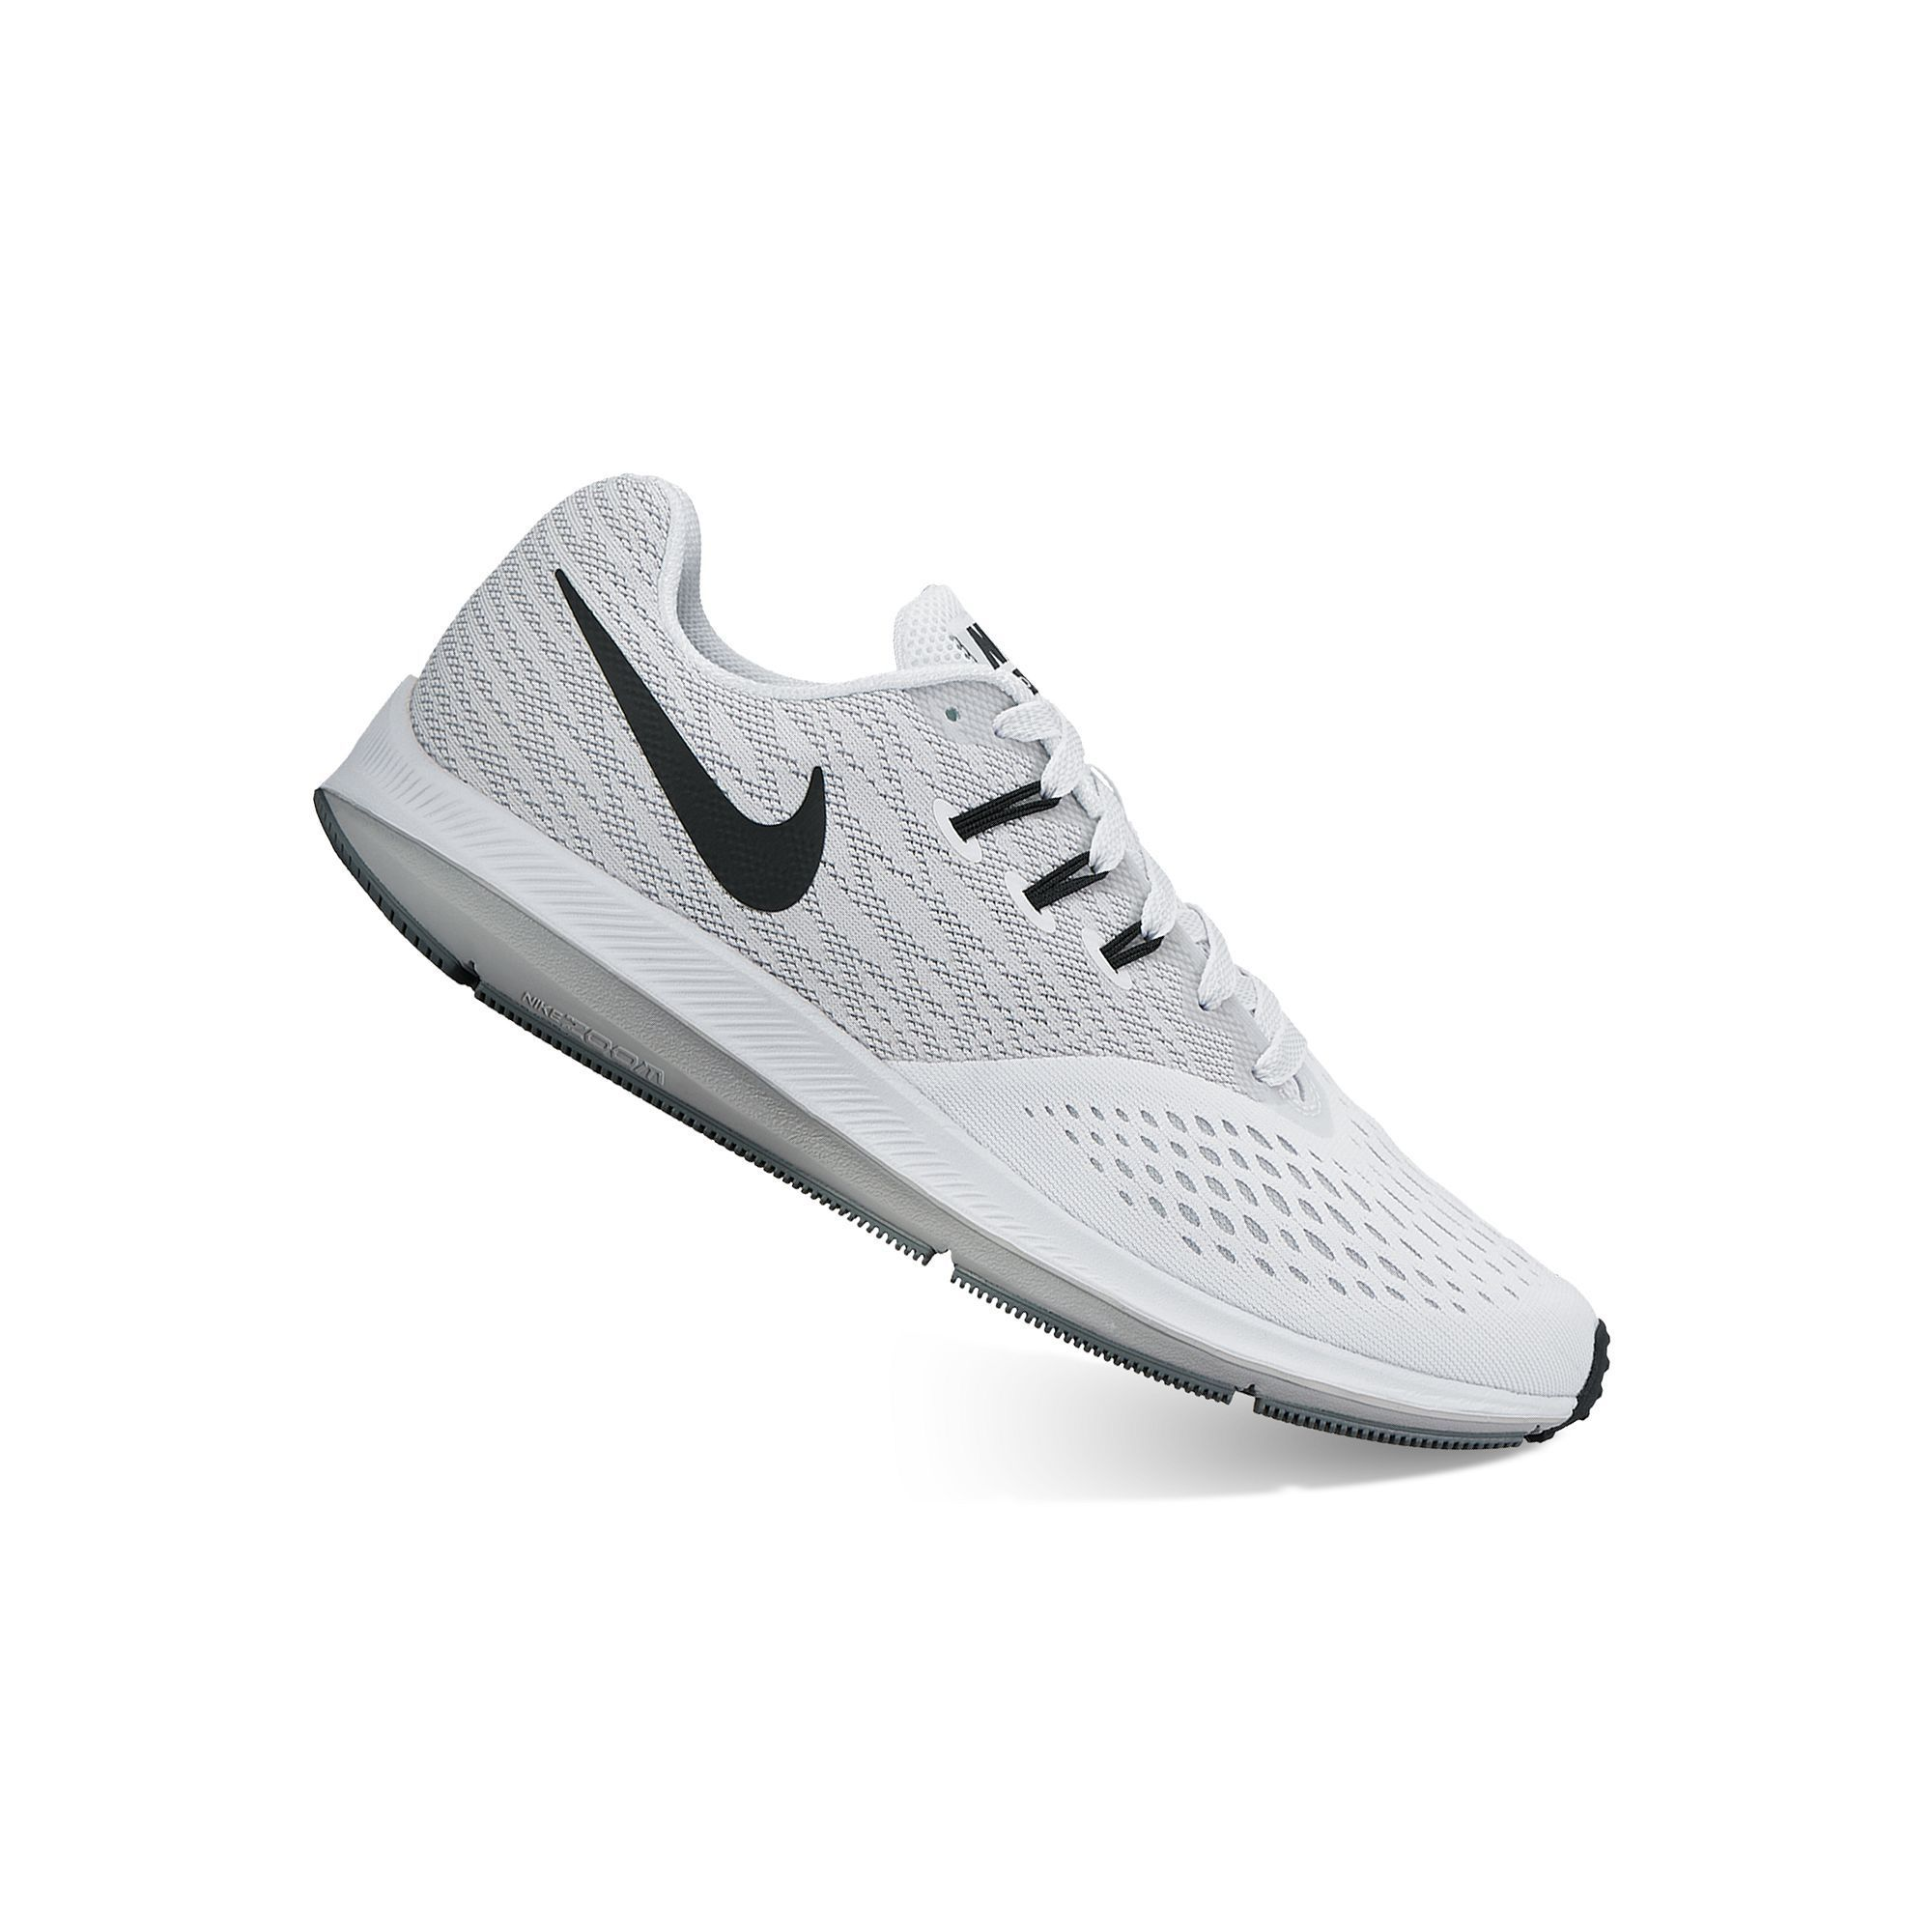 a3892b1ab7c Nike Air Zoom Winflo 4 Men s Running Shoes